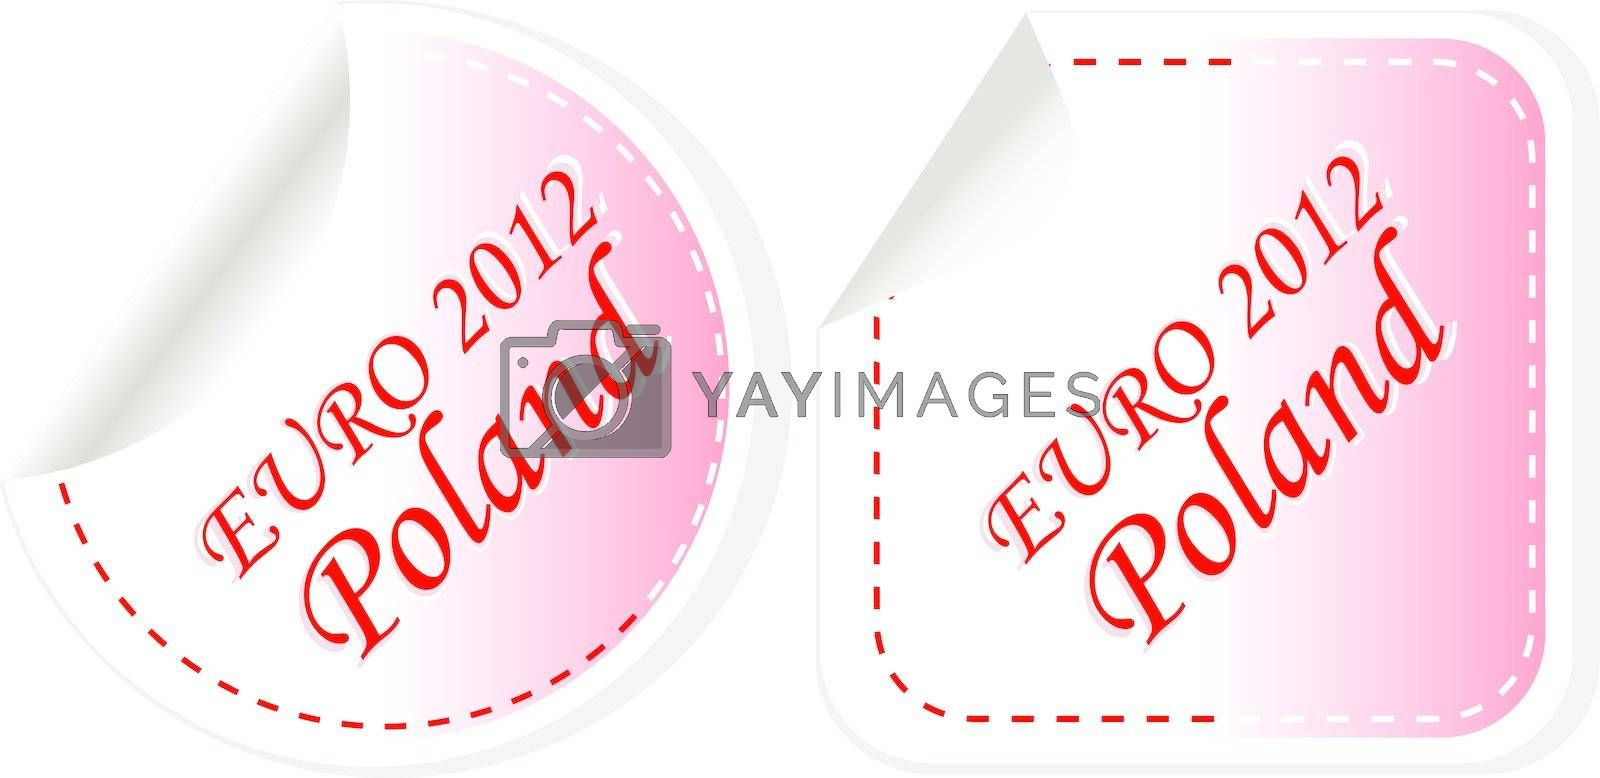 poland euro 2012 in flag colors sticker set. vector illustration